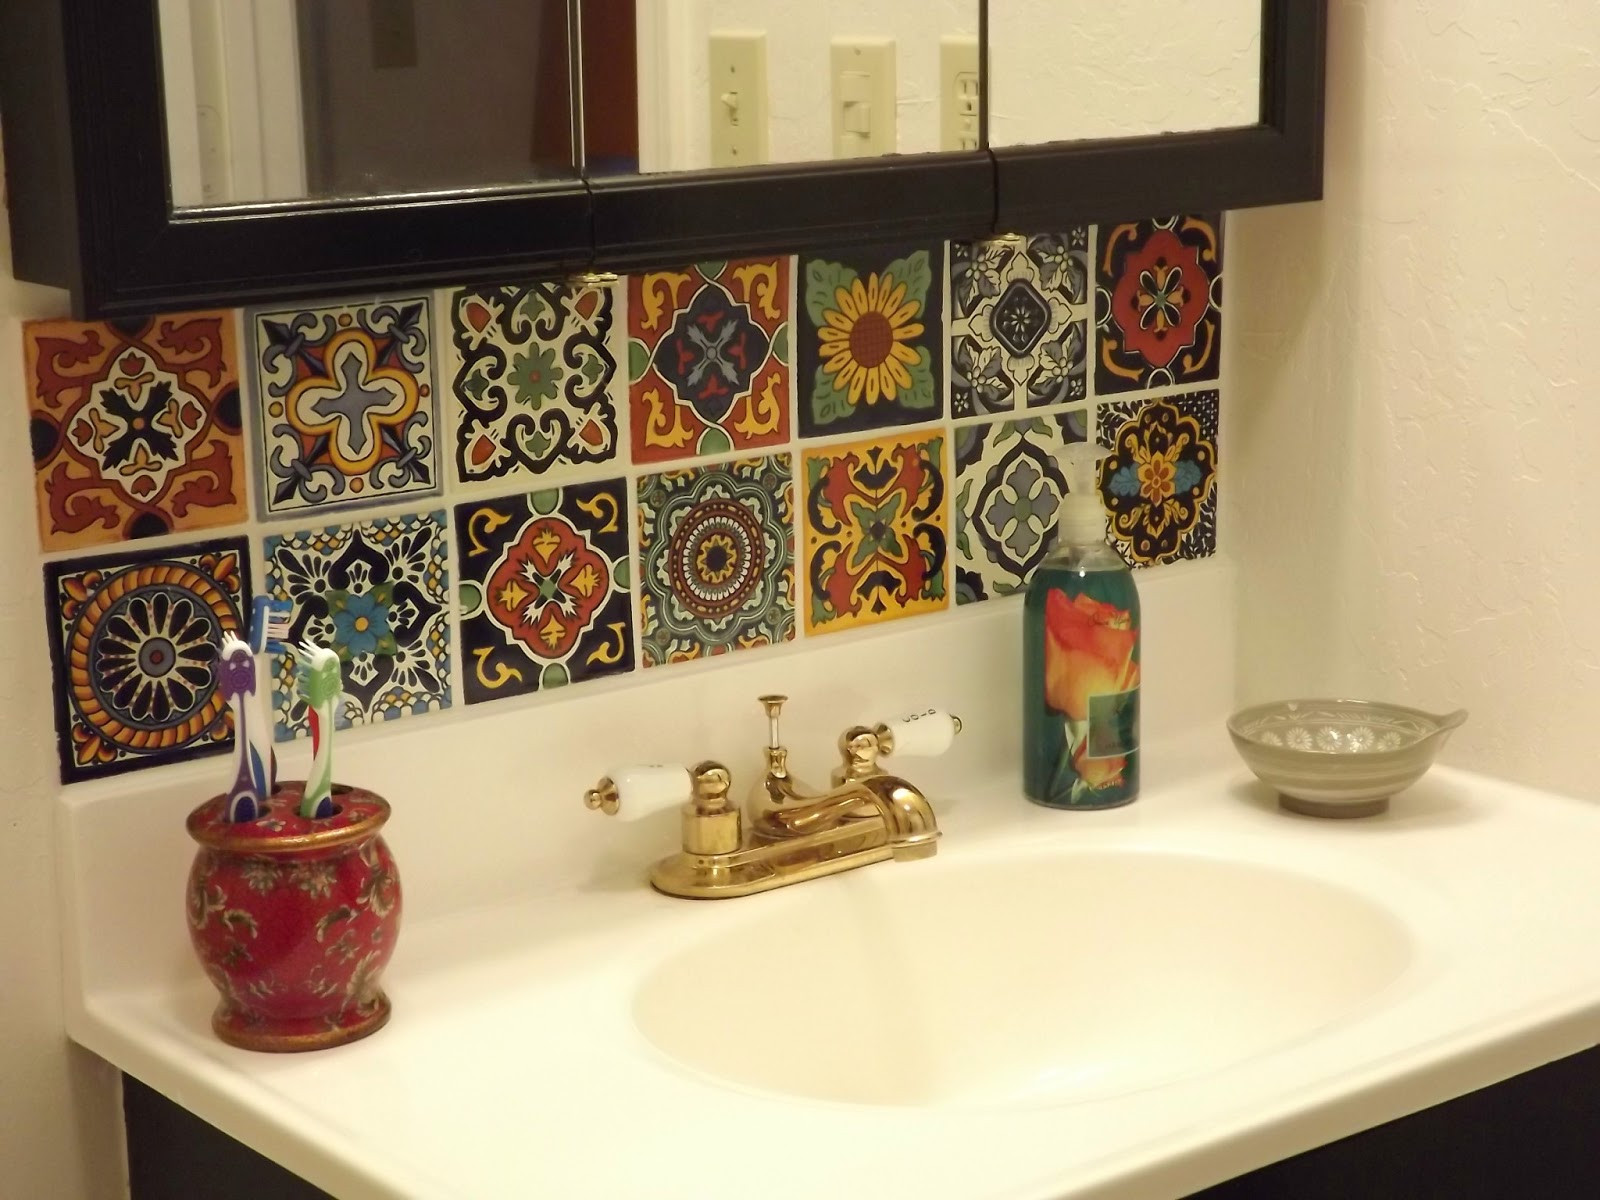 Best ideas about DIY Bathroom Backsplash . Save or Pin Dusty Coyote Mexican Tile Kitchen Backsplash DIY Now.